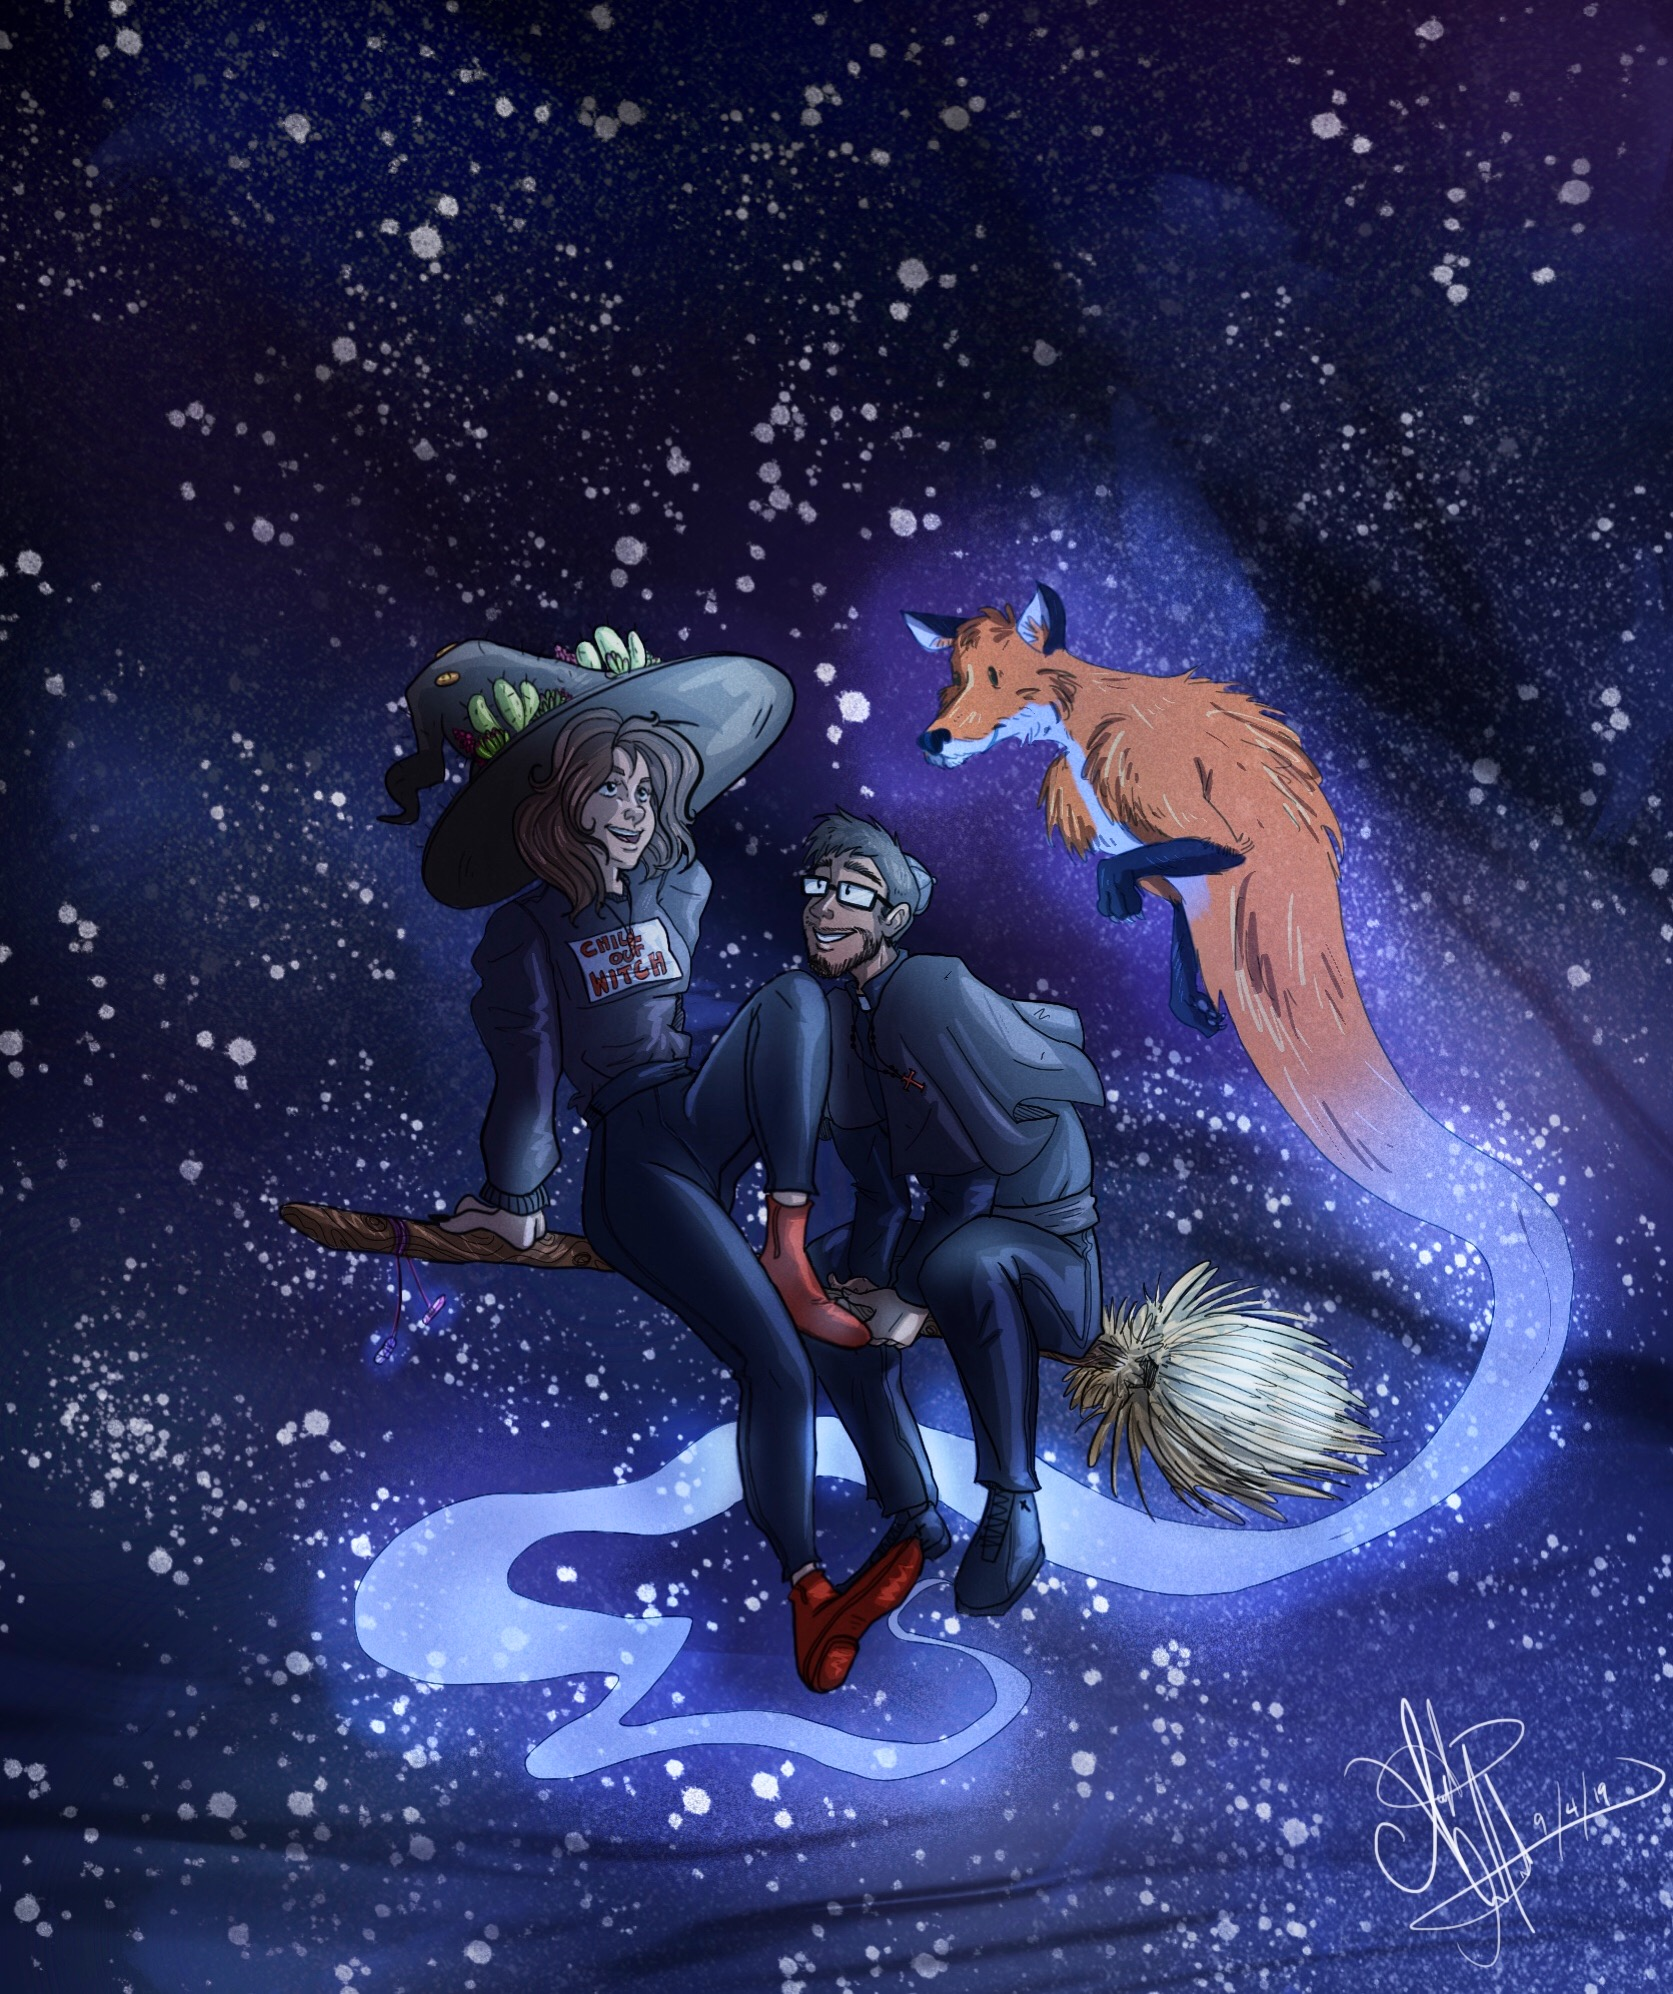 two figures flying on broom in nightsky with fox